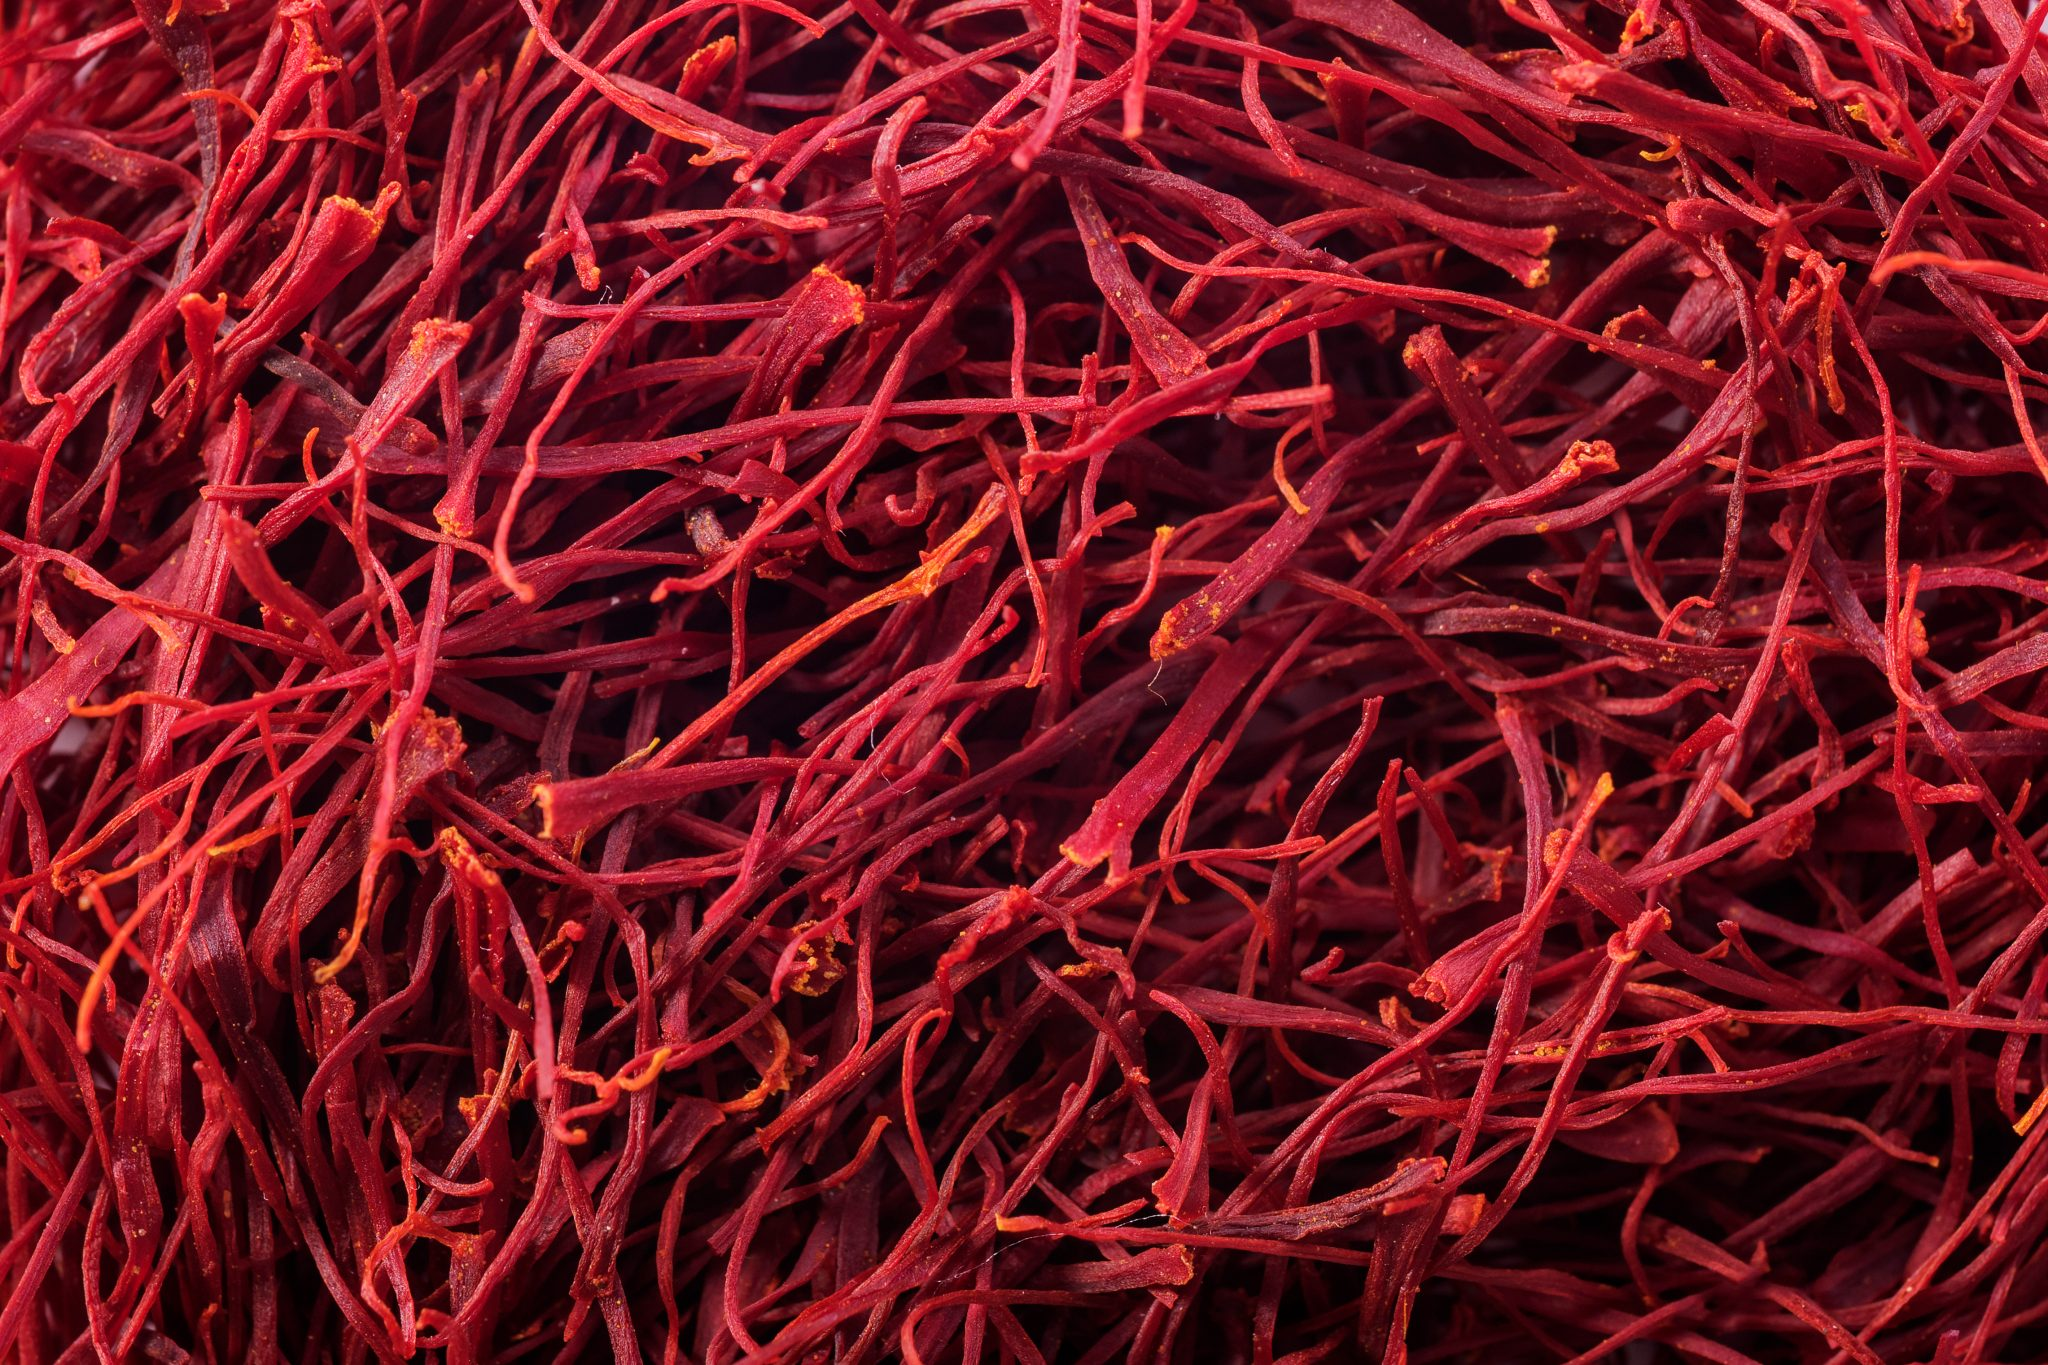 How Long Does Saffron Last? Can it go bad?